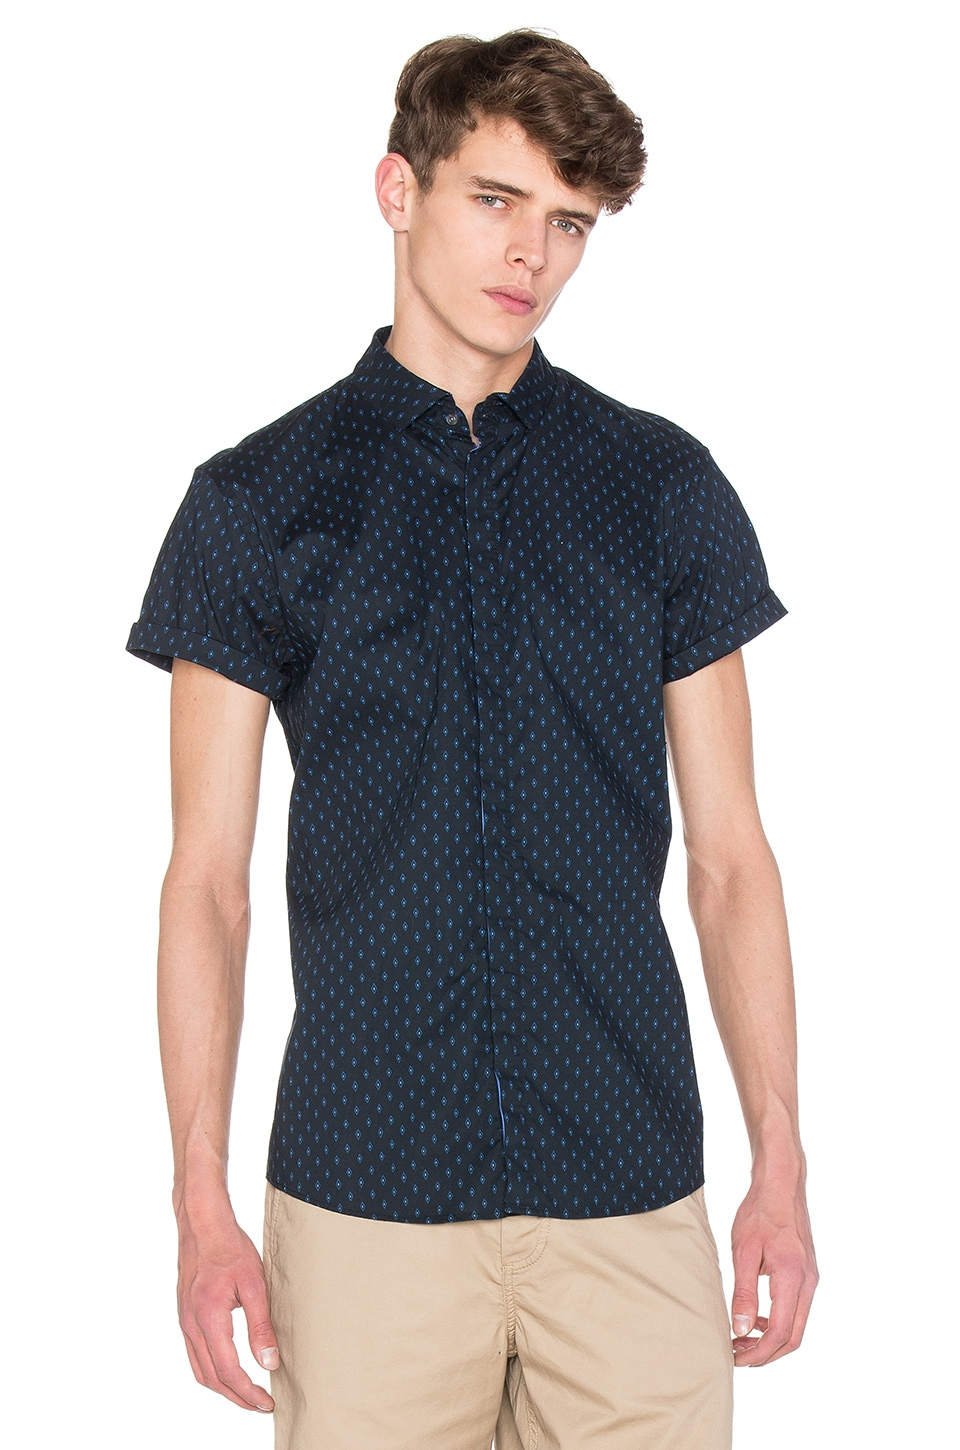 Shortsleeve Dress Shirt